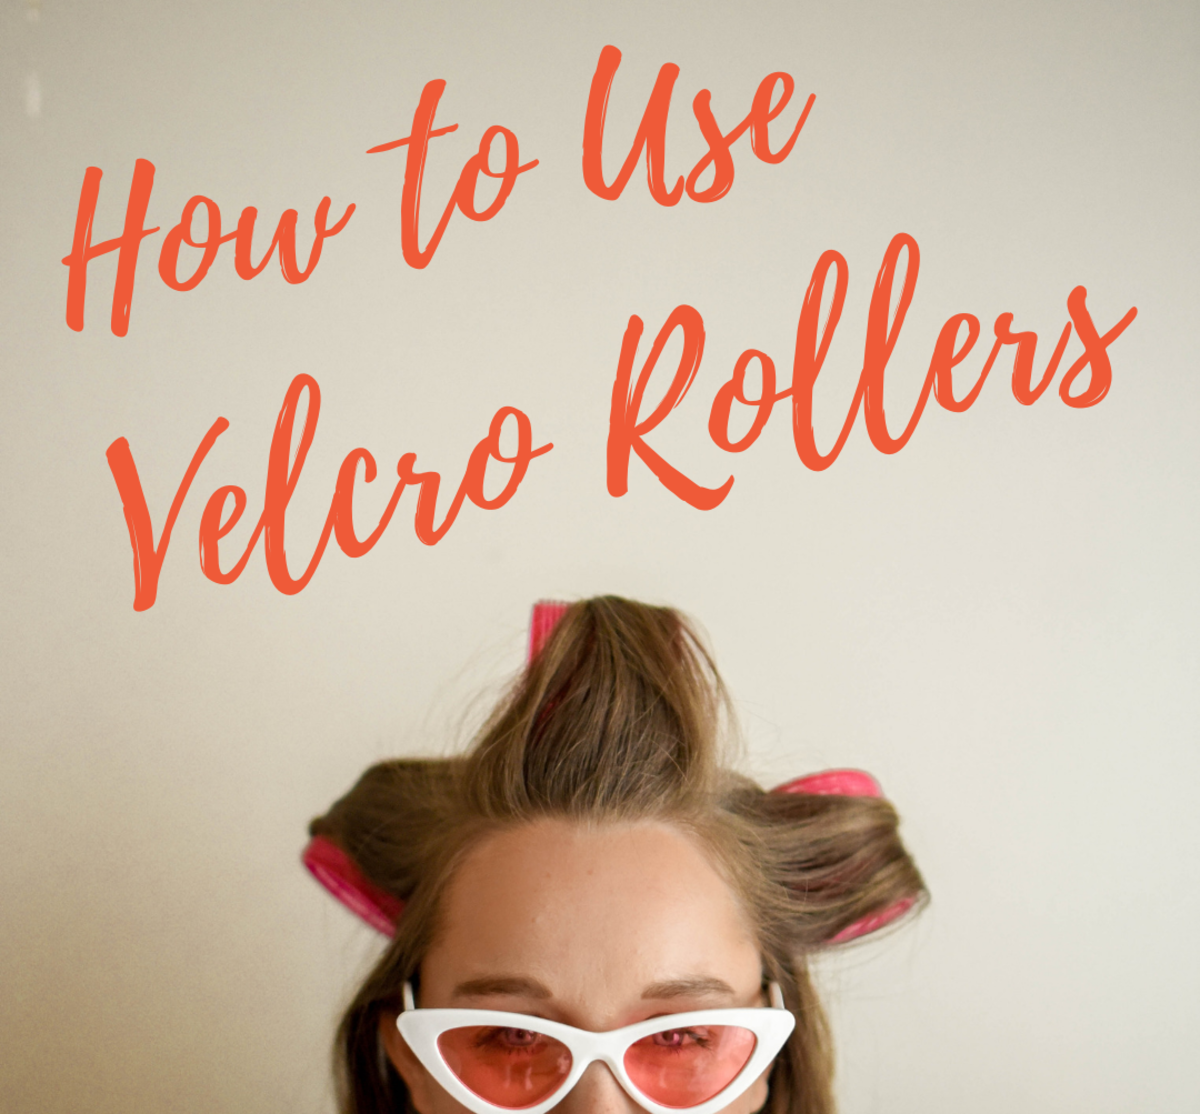 Velcro rollers are a quick, low-effort way to create waves or curls.